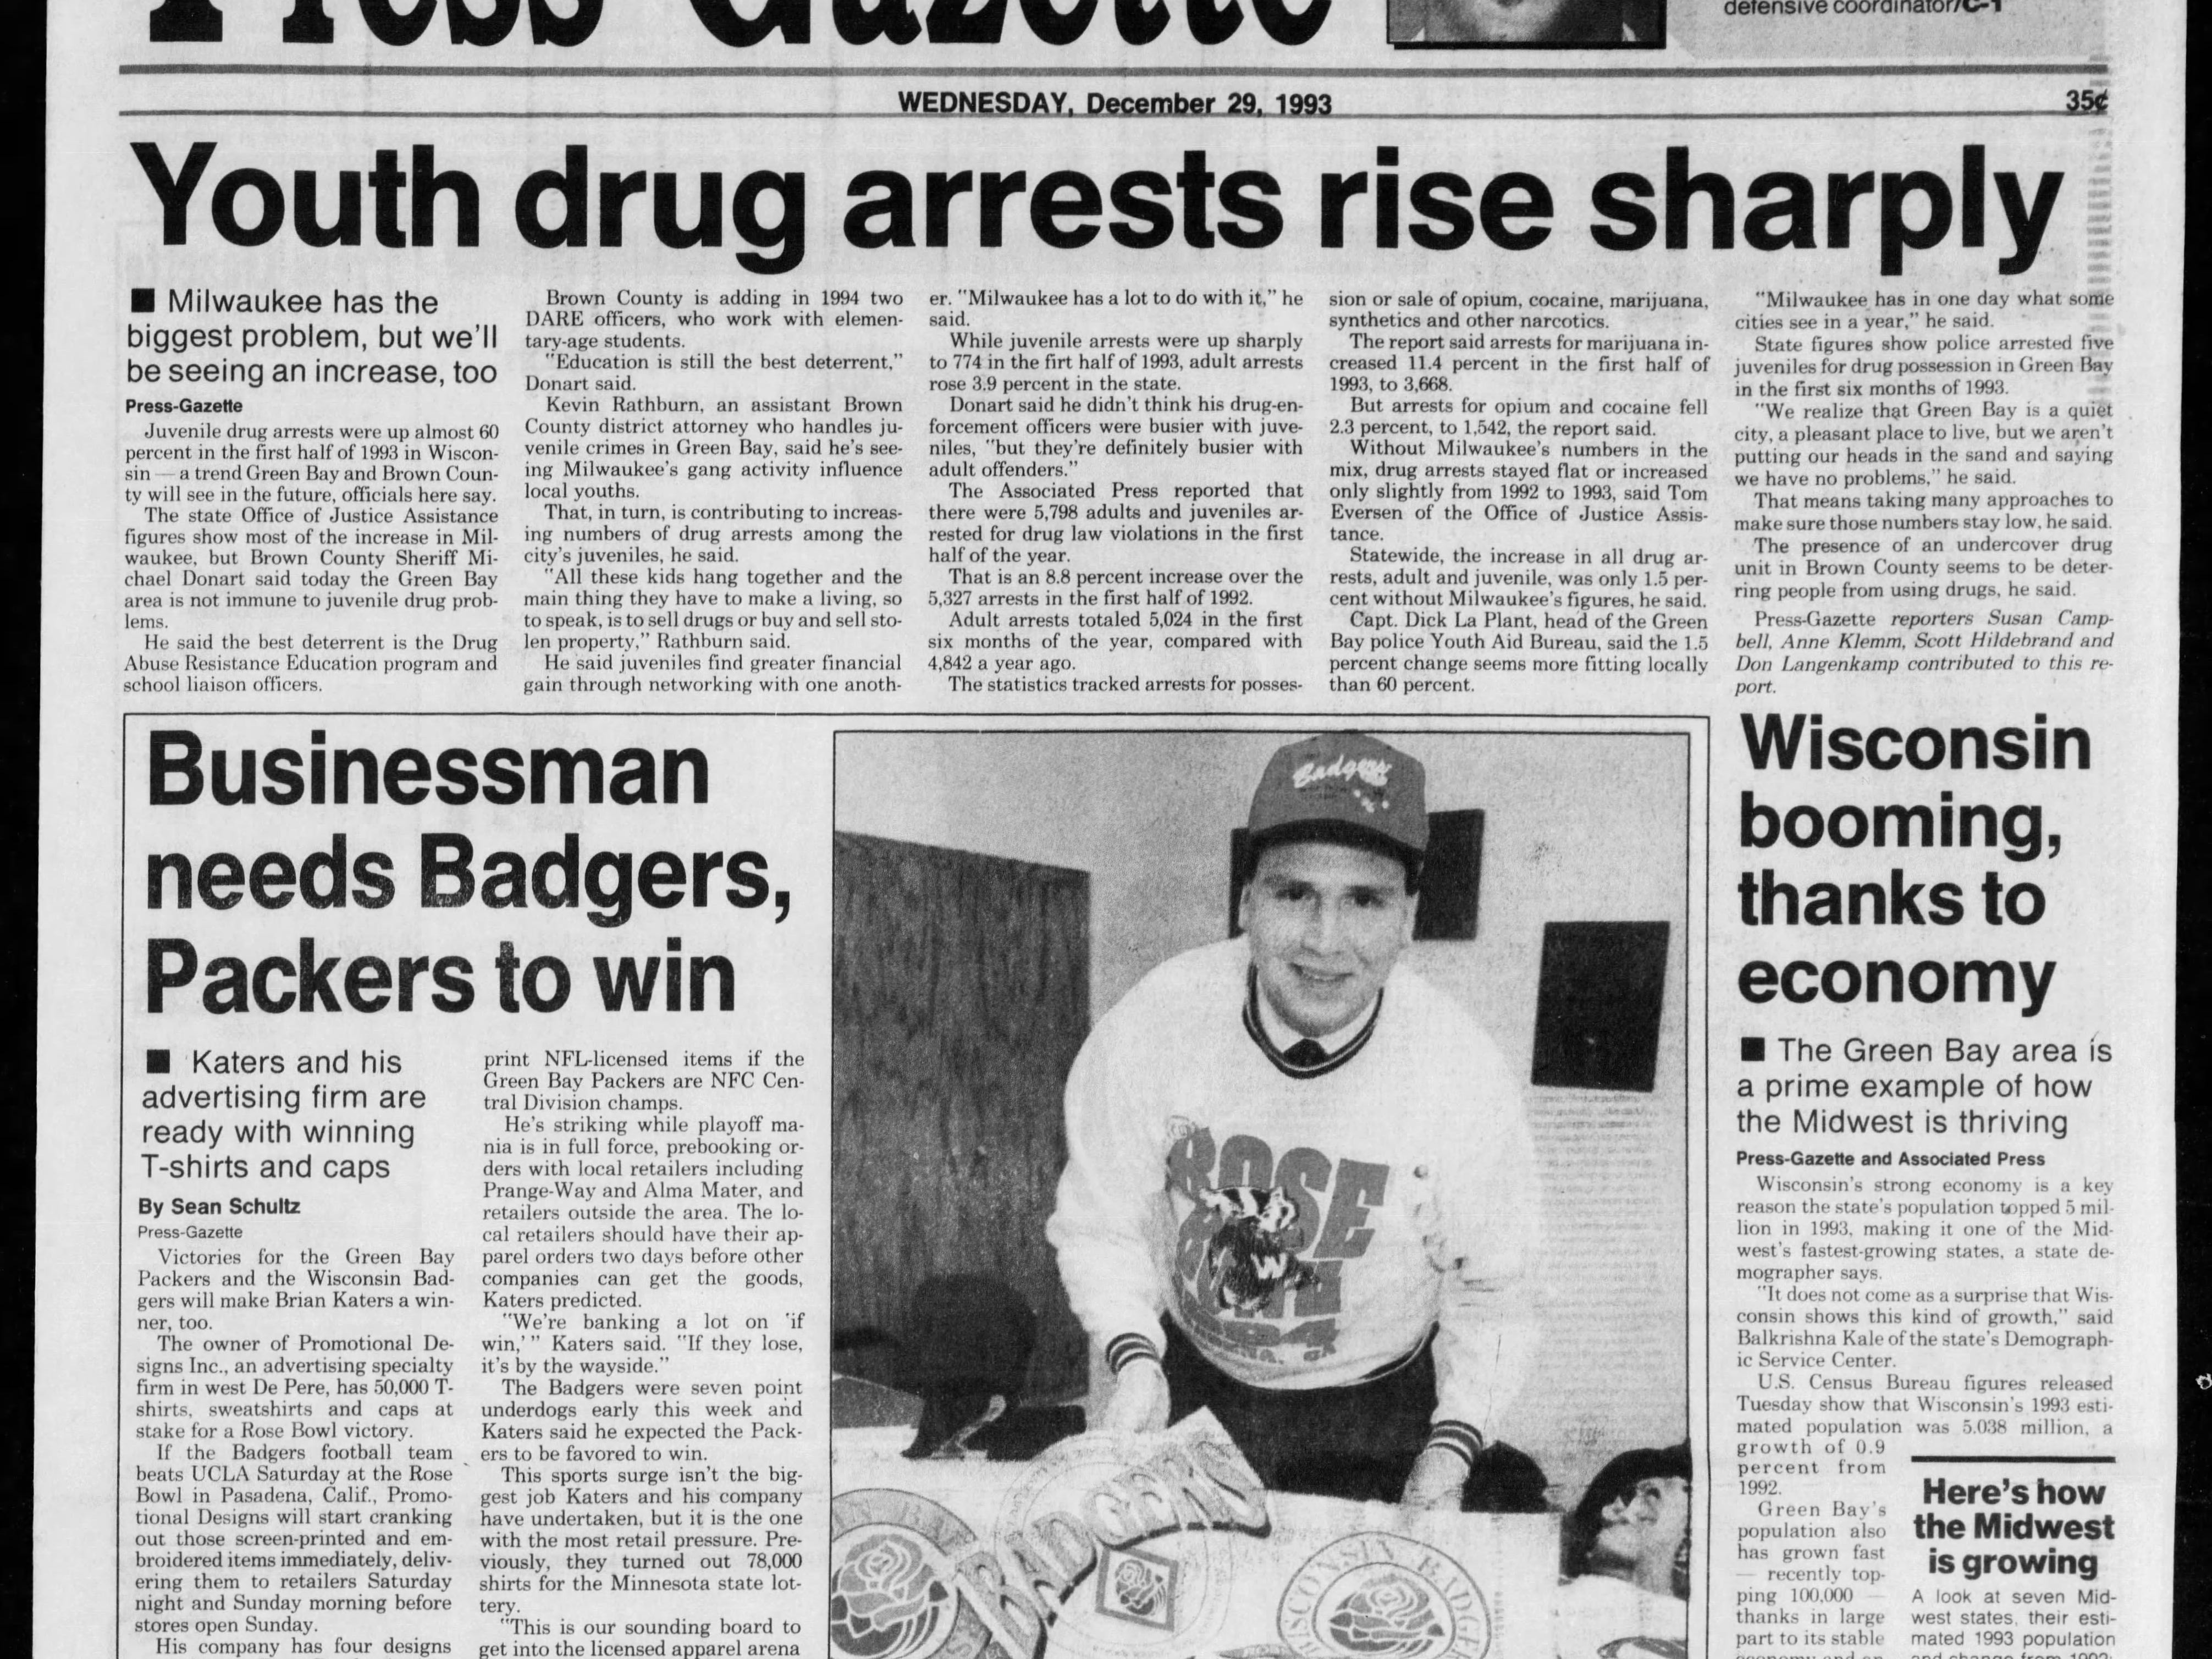 Today in History: Dec. 29, 1993